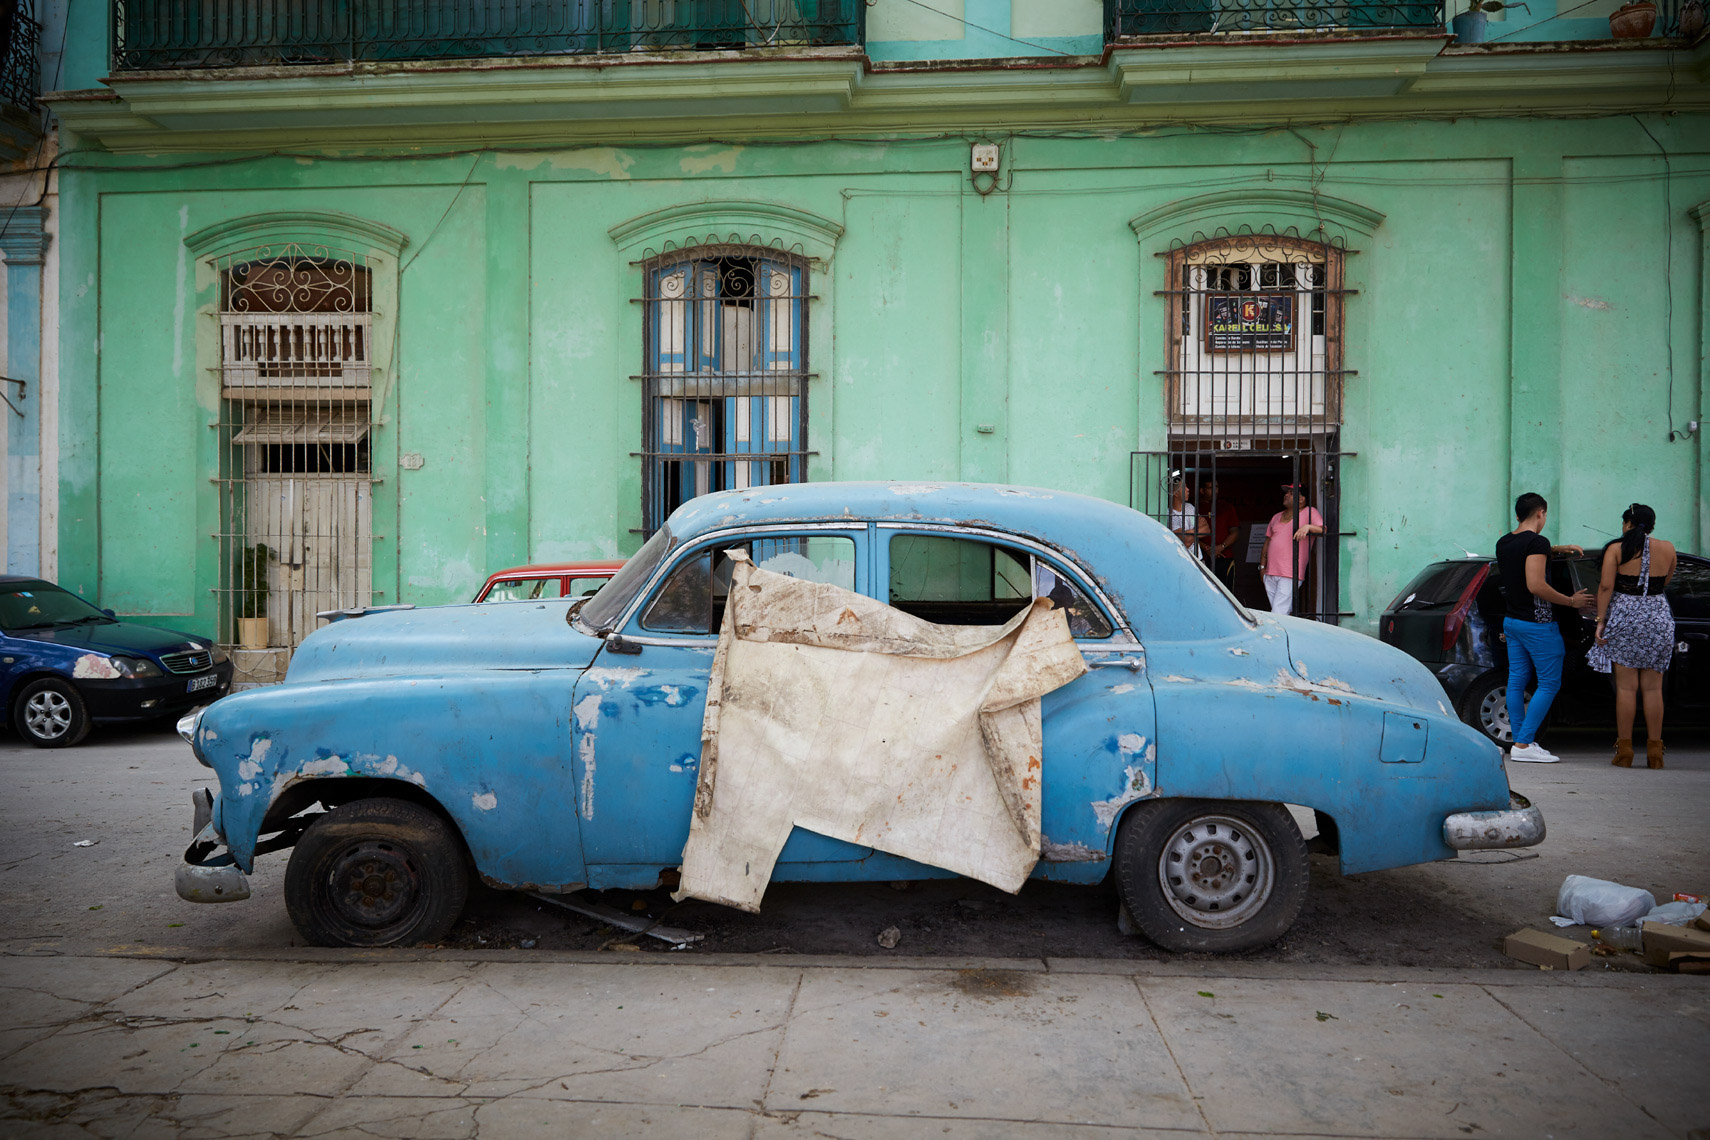 antique blue car in front of teal apartment wall in Cuba